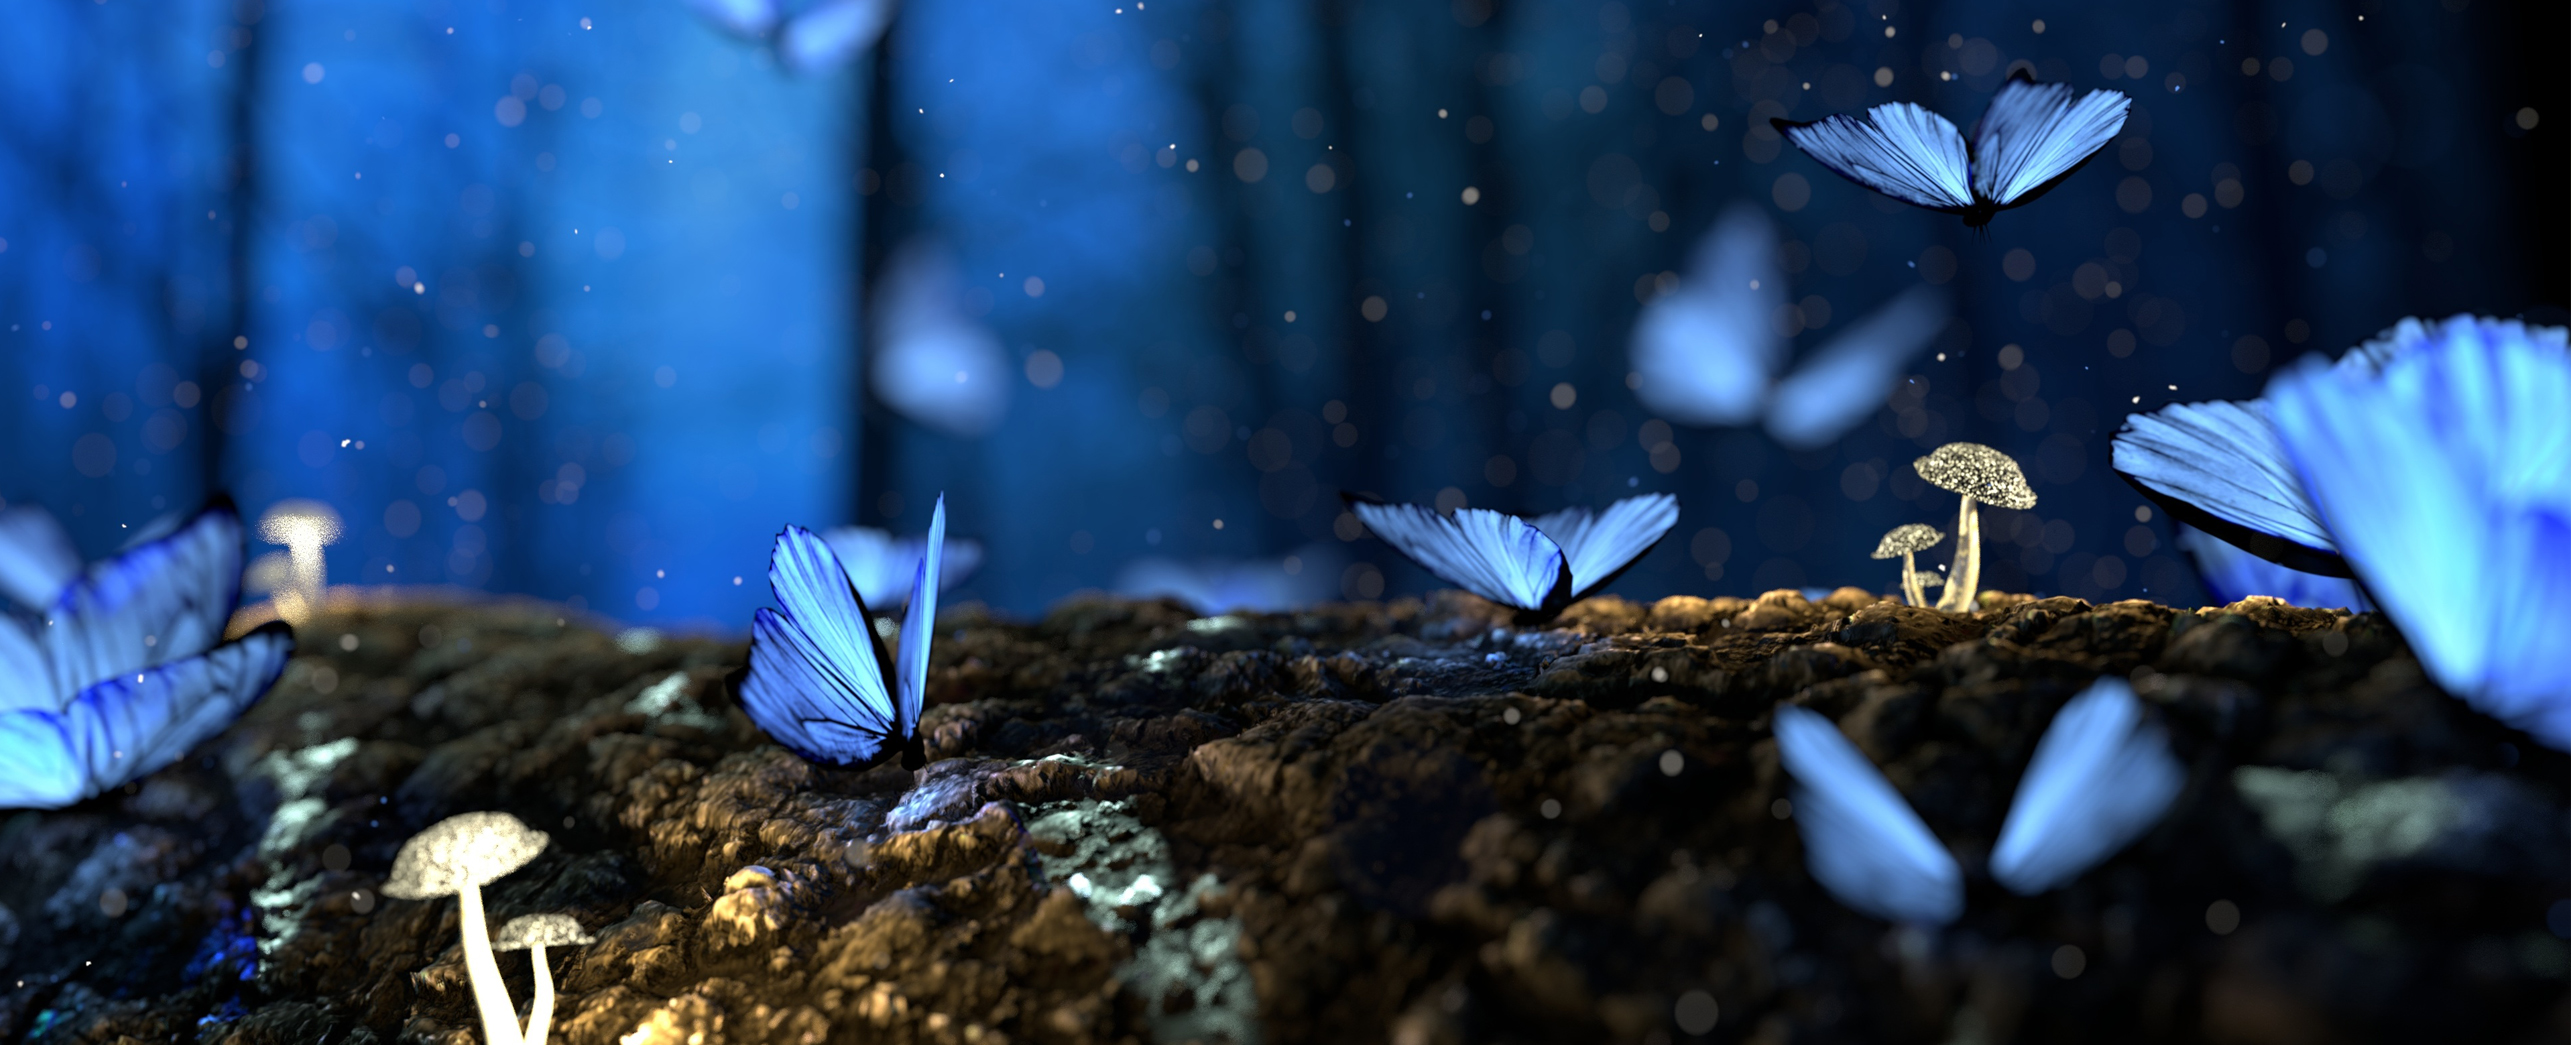 Blue butterflies on a log with flowing mushrooms